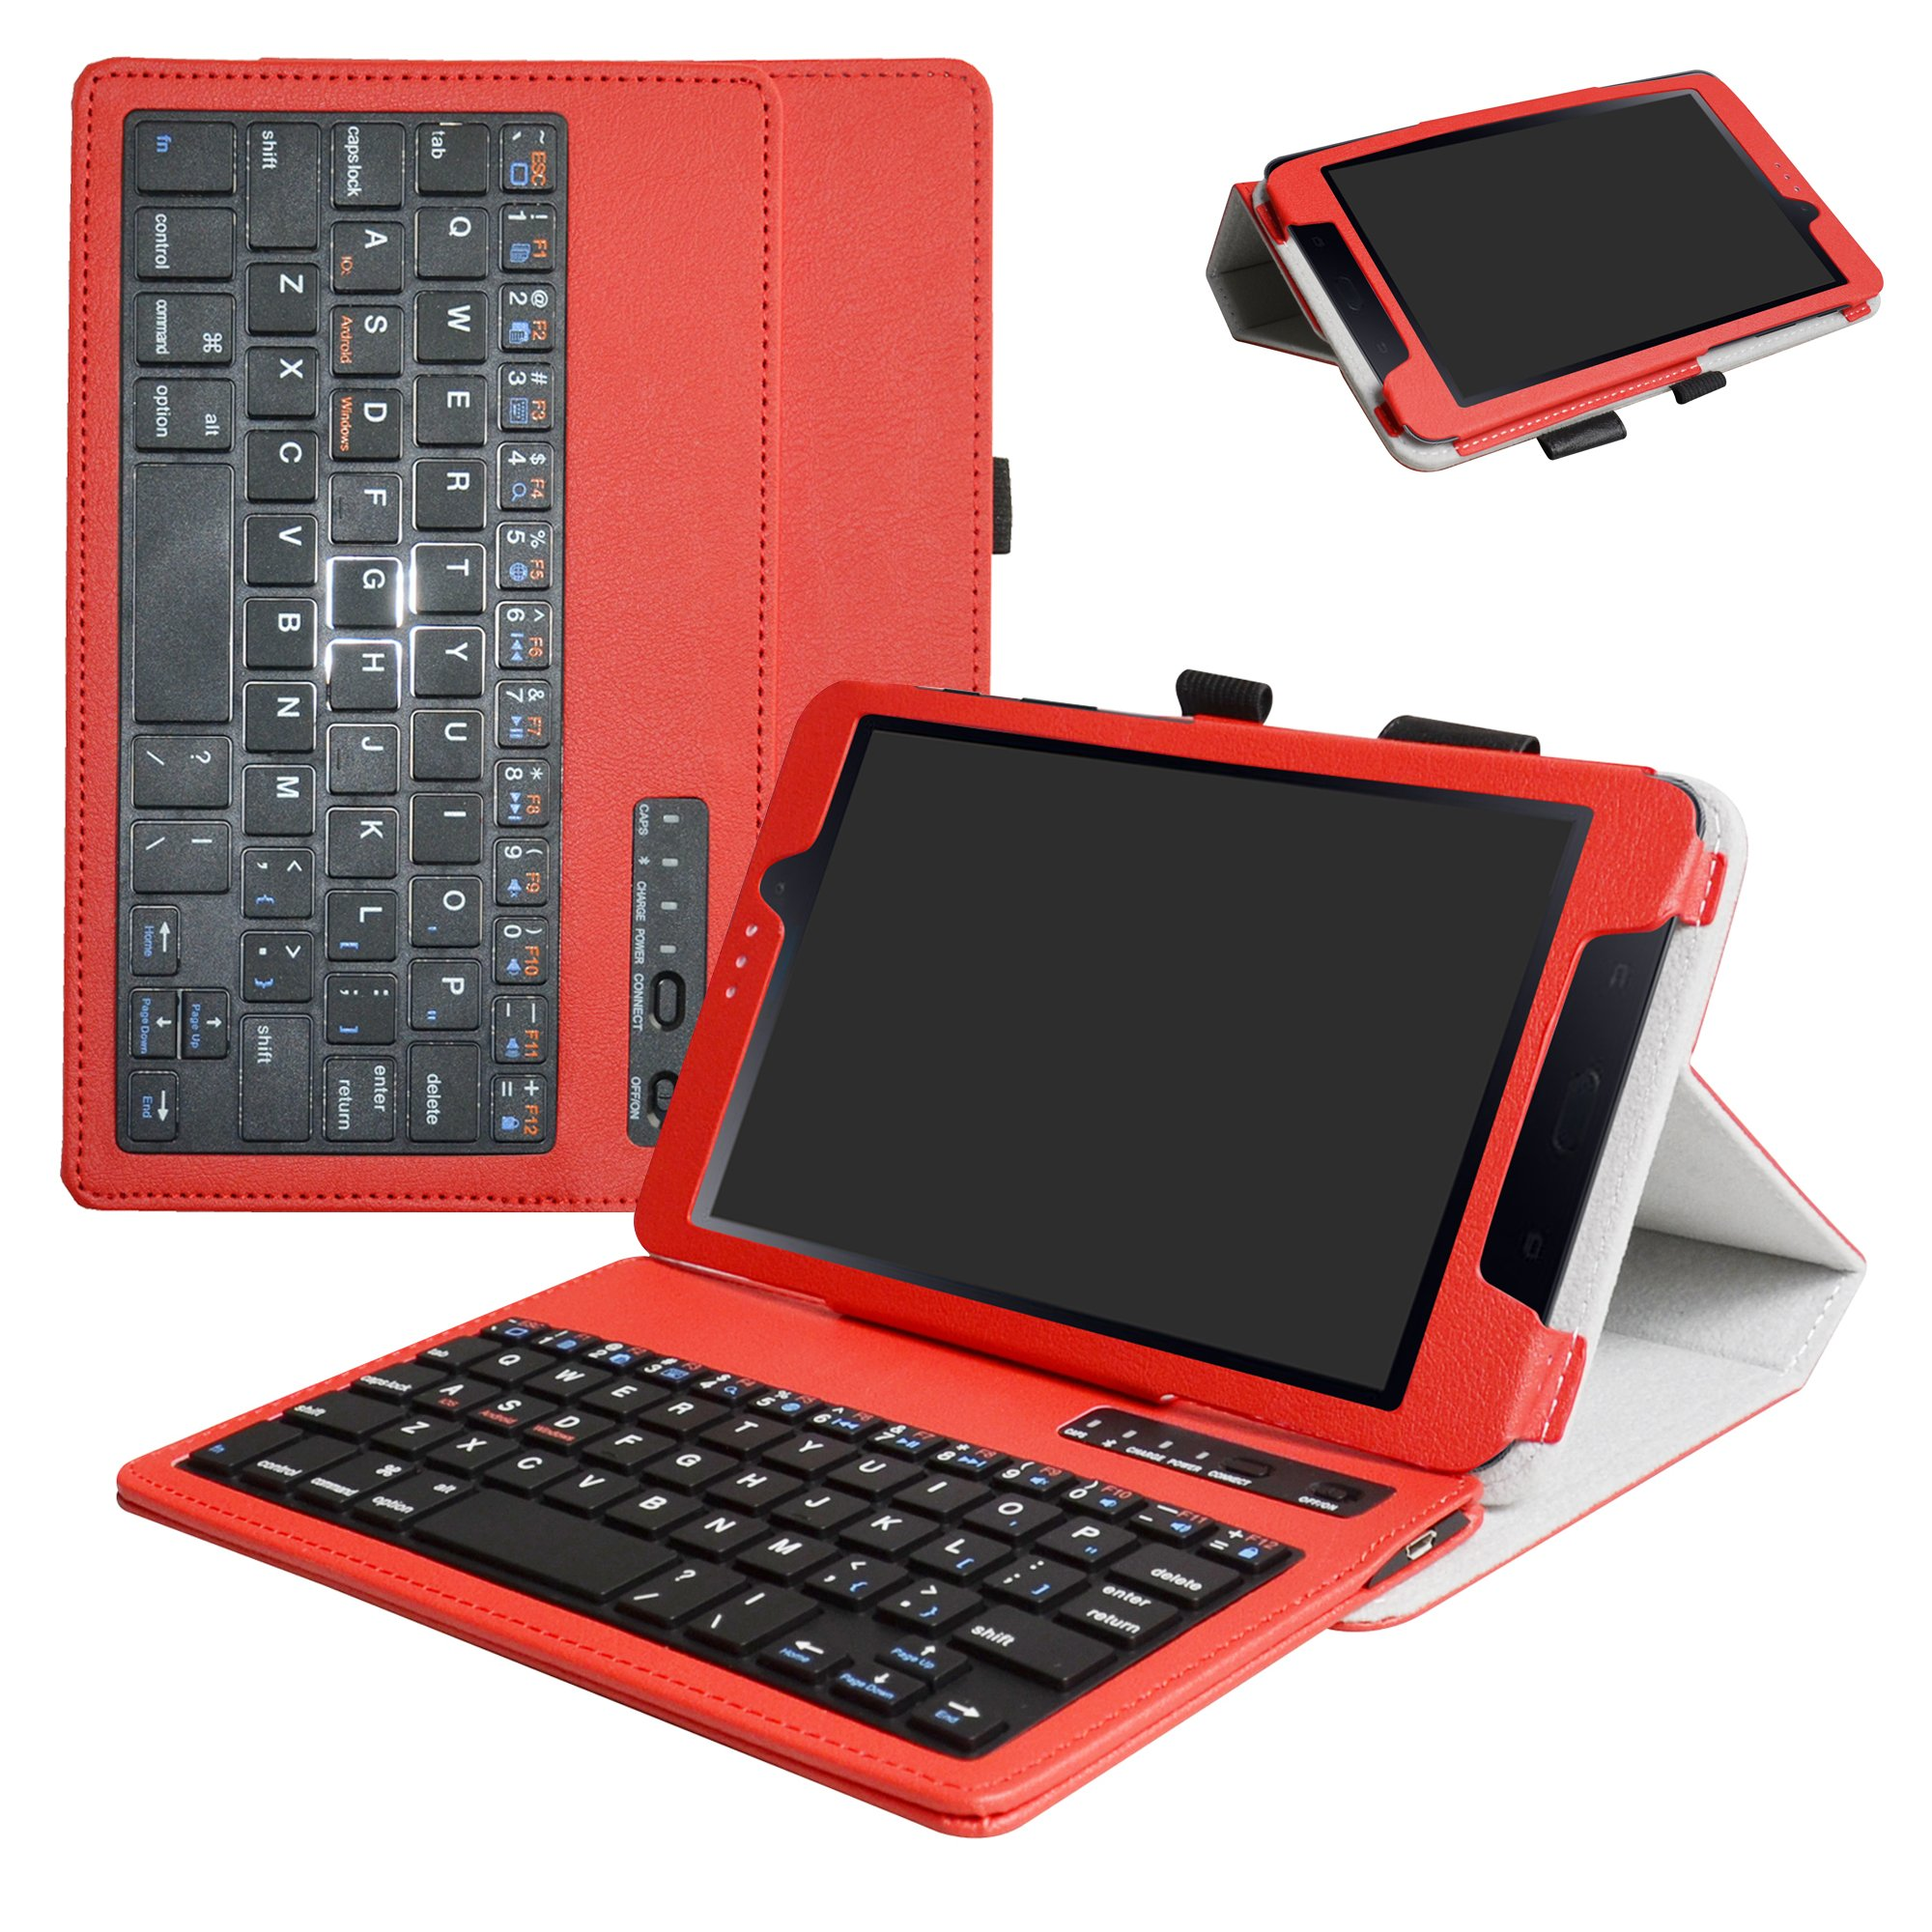 Samsung Galaxy Tab A 8.0 2017 Bluetooth Keyboard Case,Mama Mouth Slim Stand PU Leather Cover with Romovable Bluetooth Keyboard for Samsung Galaxy Tab A2 S/Tab A 8.0 SM-T380 T385 Tablet,Red